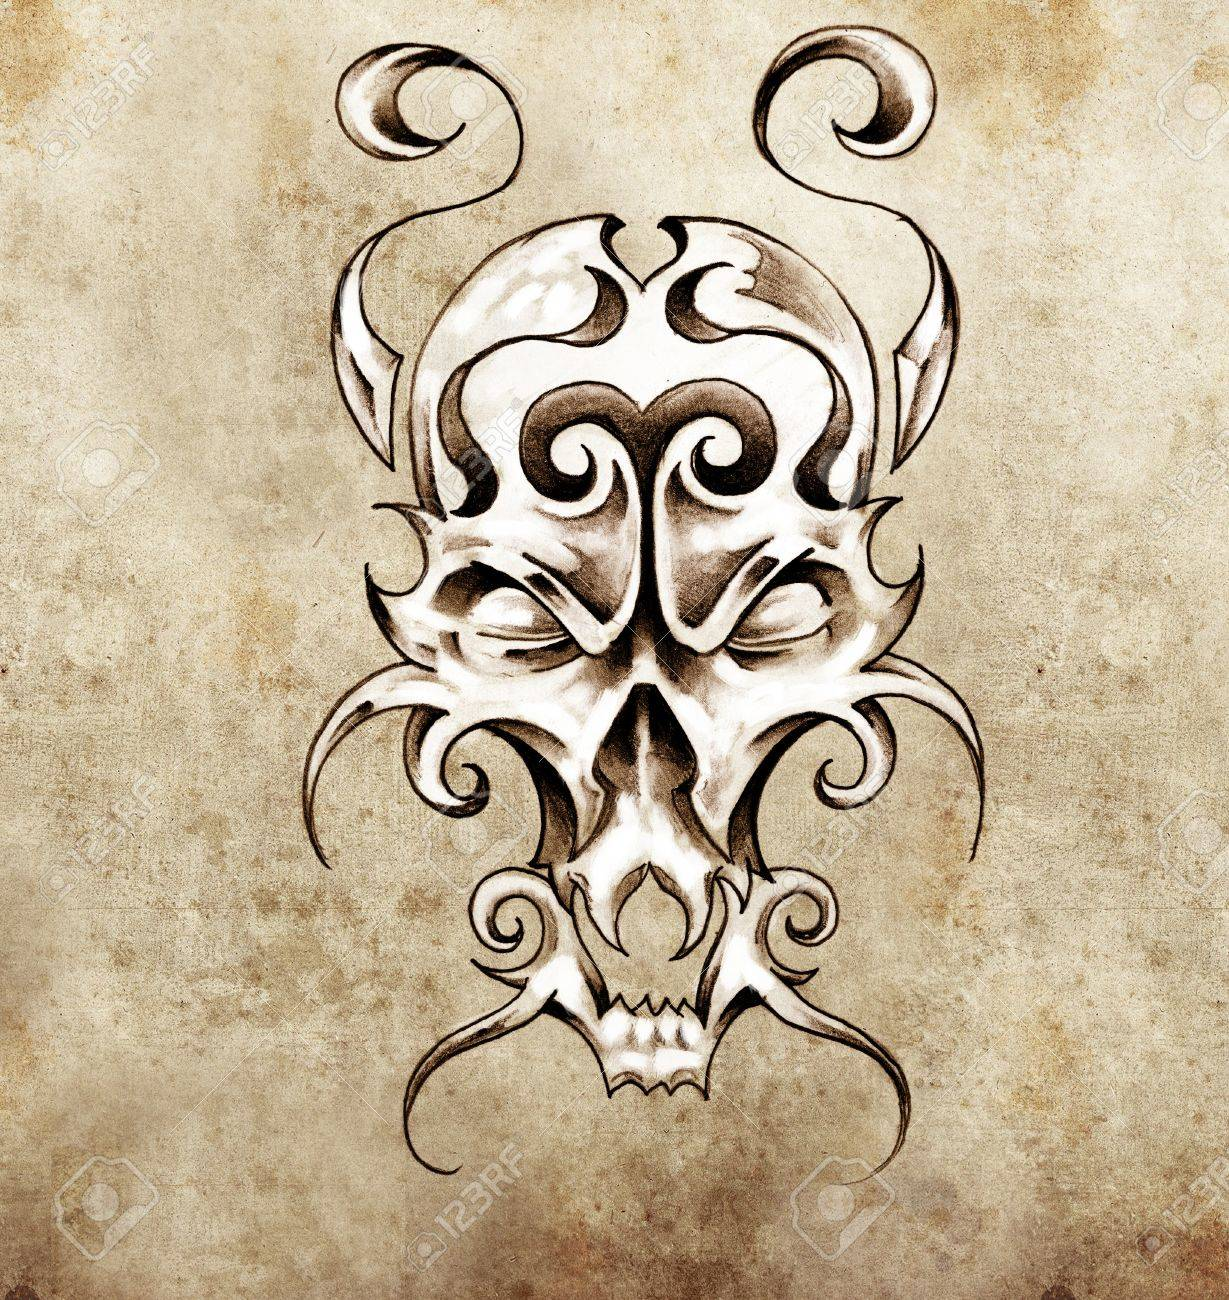 Sketch of tattoo art, monster mask with decorative elements Stock Photo - 13028492